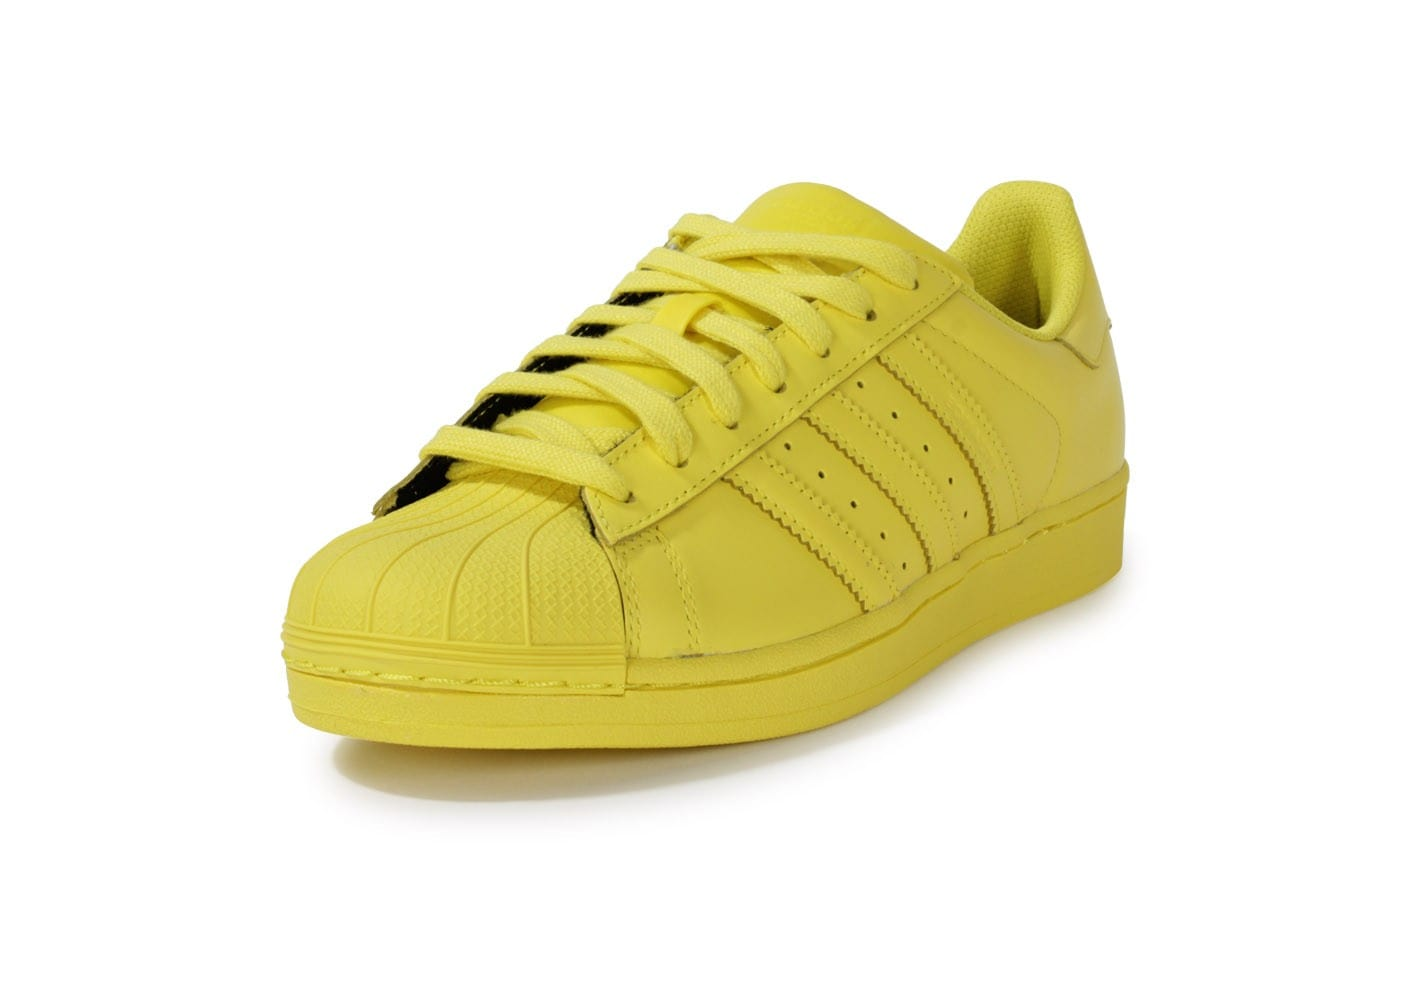 ... Chaussures adidas Superstar Supercolor Jaune vue avant ...